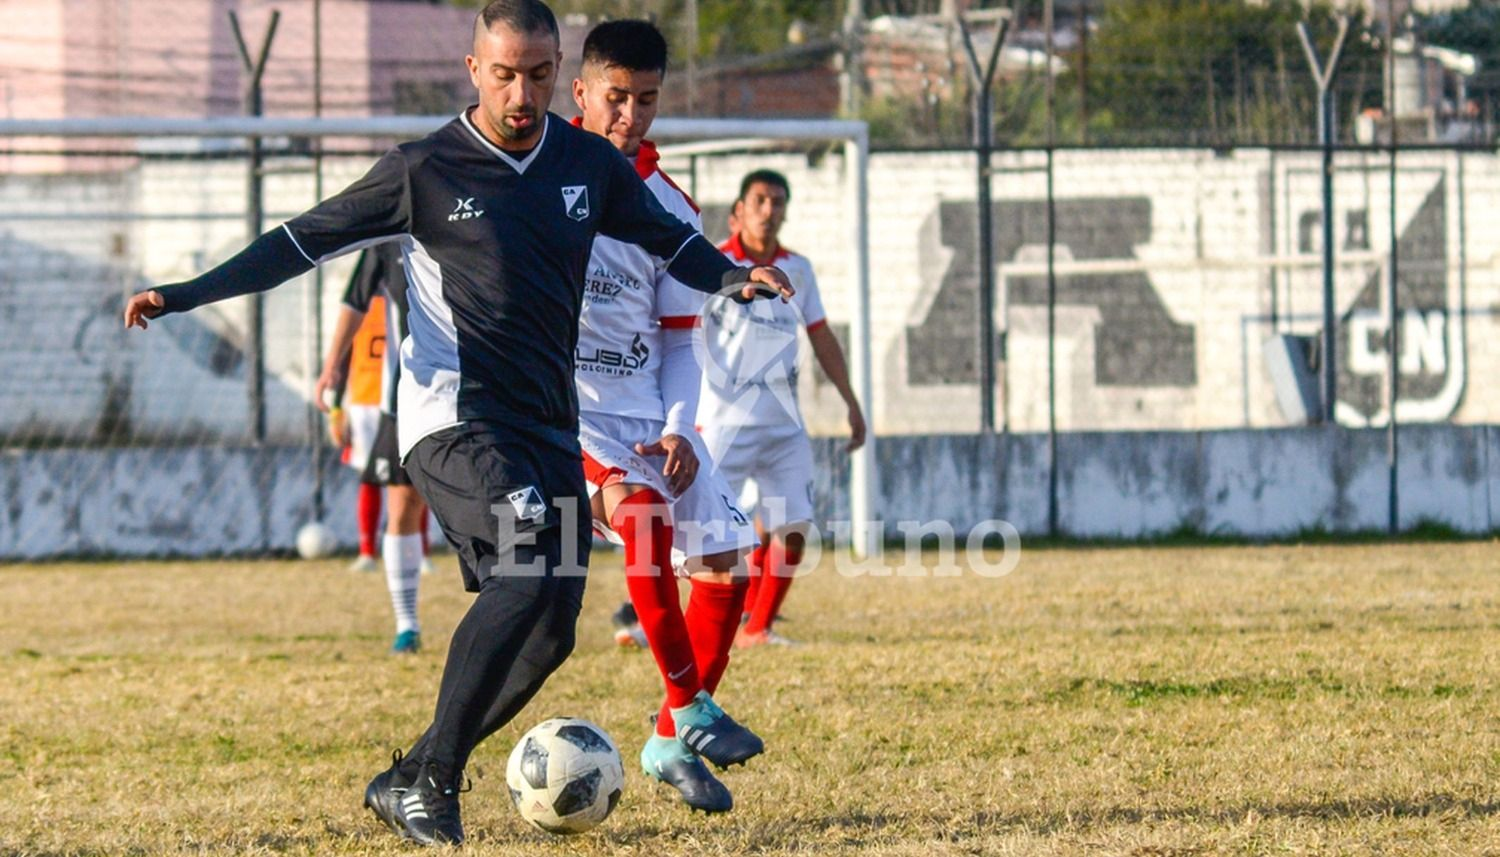 Central Norte goleó a La Merced pensando en River